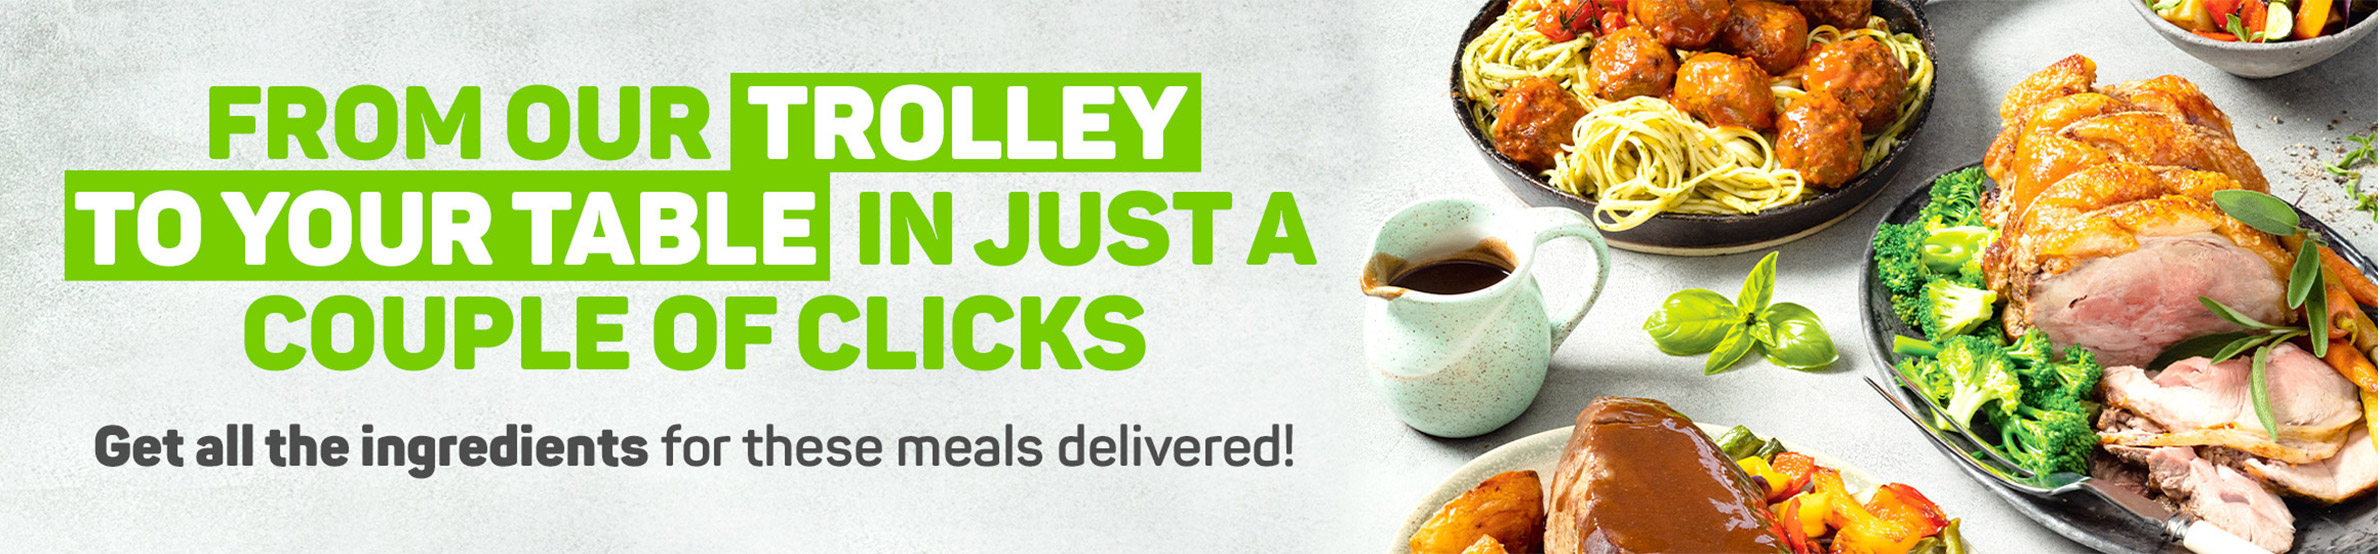 From our trolley to your table in just a couple of clicks. Get all the ingredients for these meals delivered!